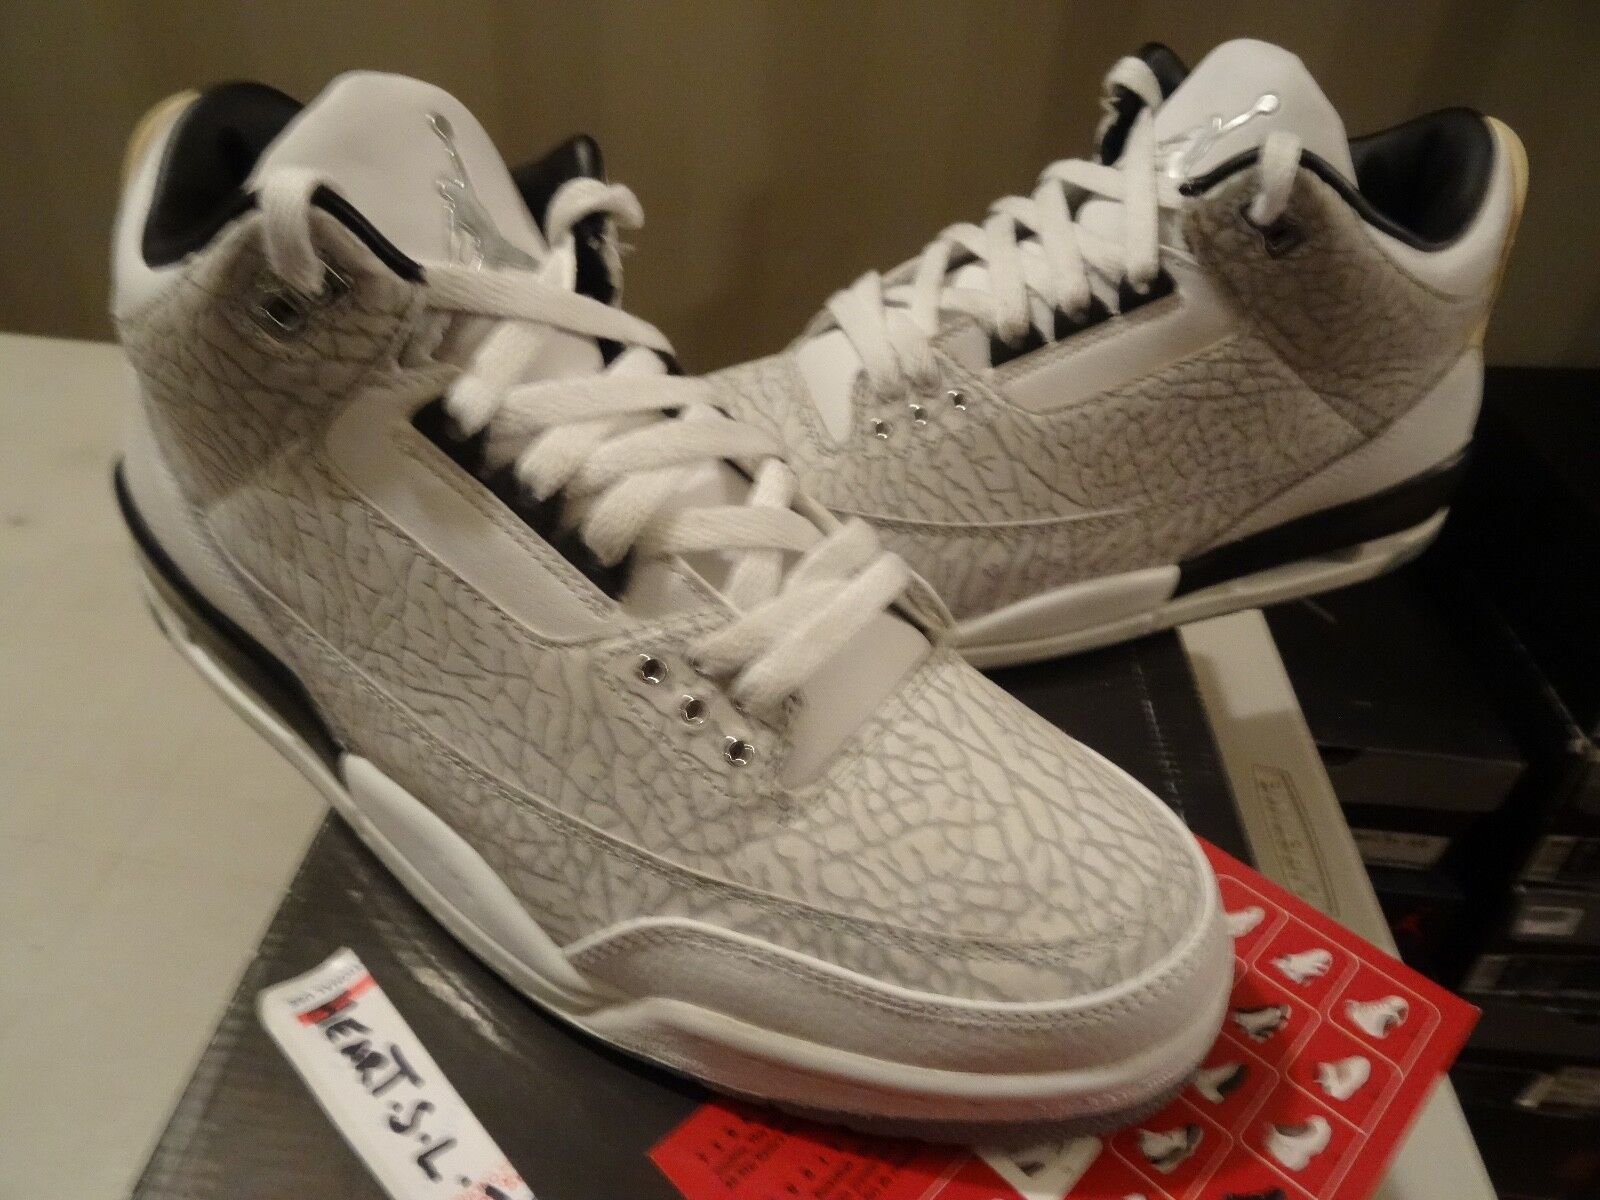 2007 Nike Air Jordan III 3 Retro FLIP CEMENT GREY WHITE BLACK 315767-101 SZ 11.5